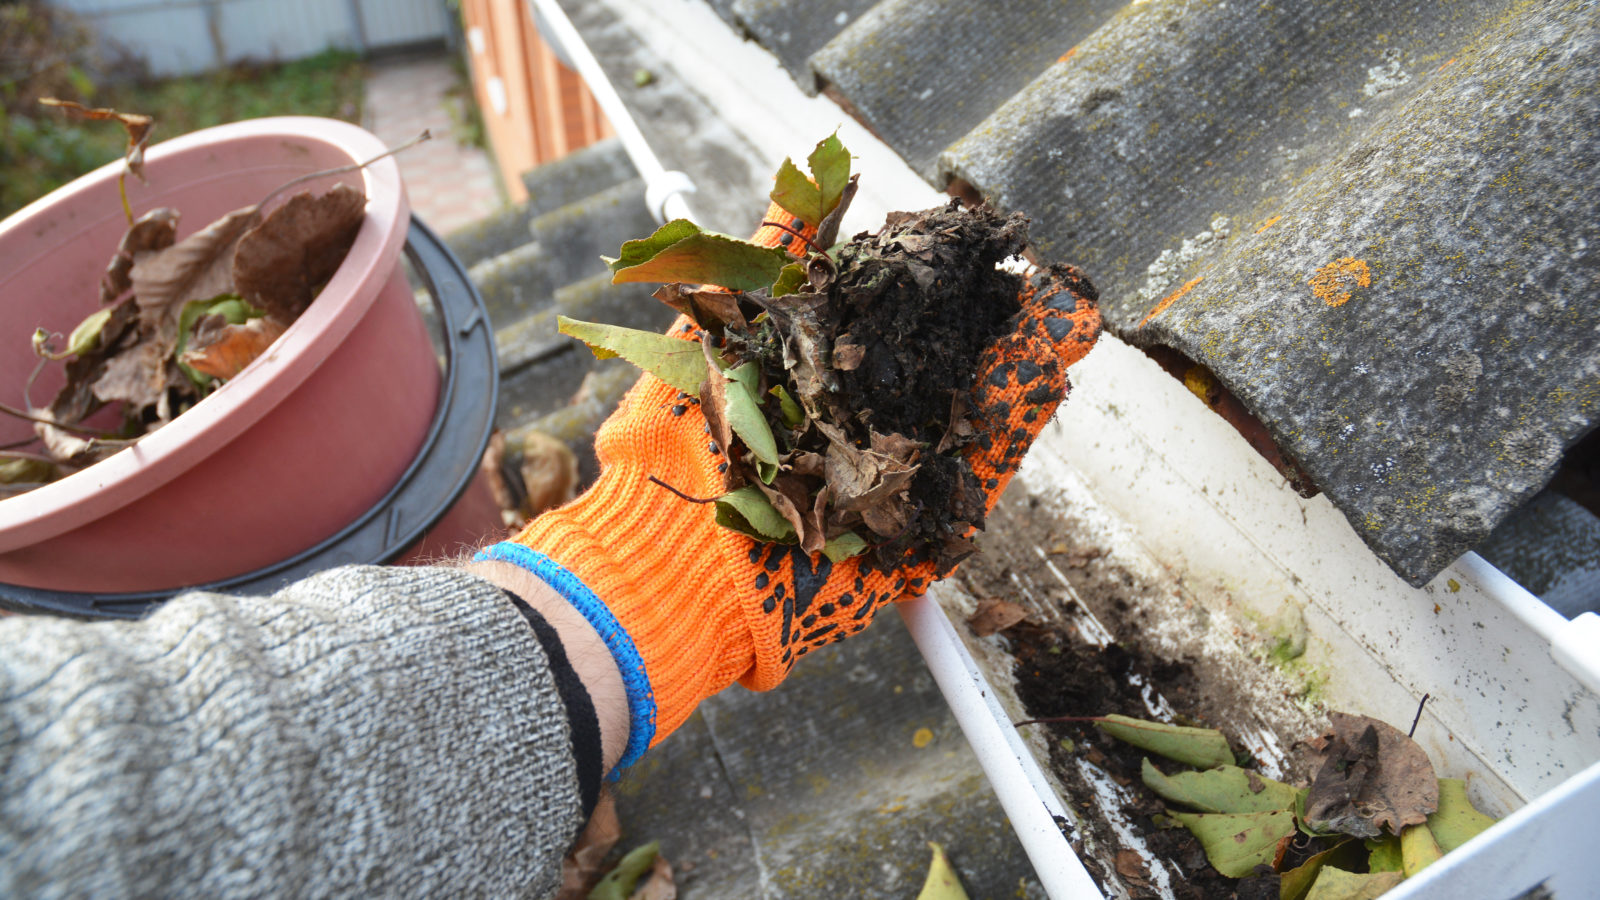 Man cleaning clogged gutter